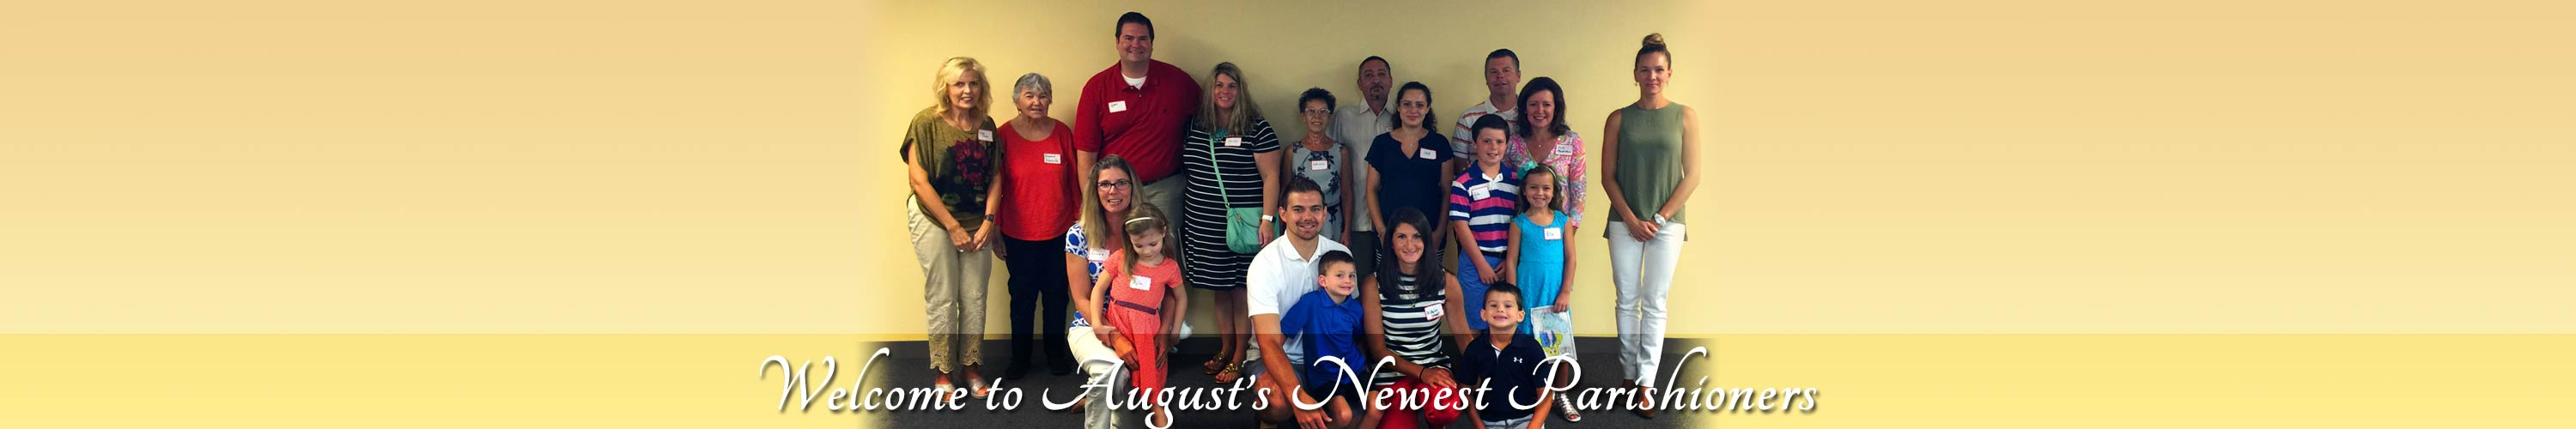 Welcome-New-Parishioners-August